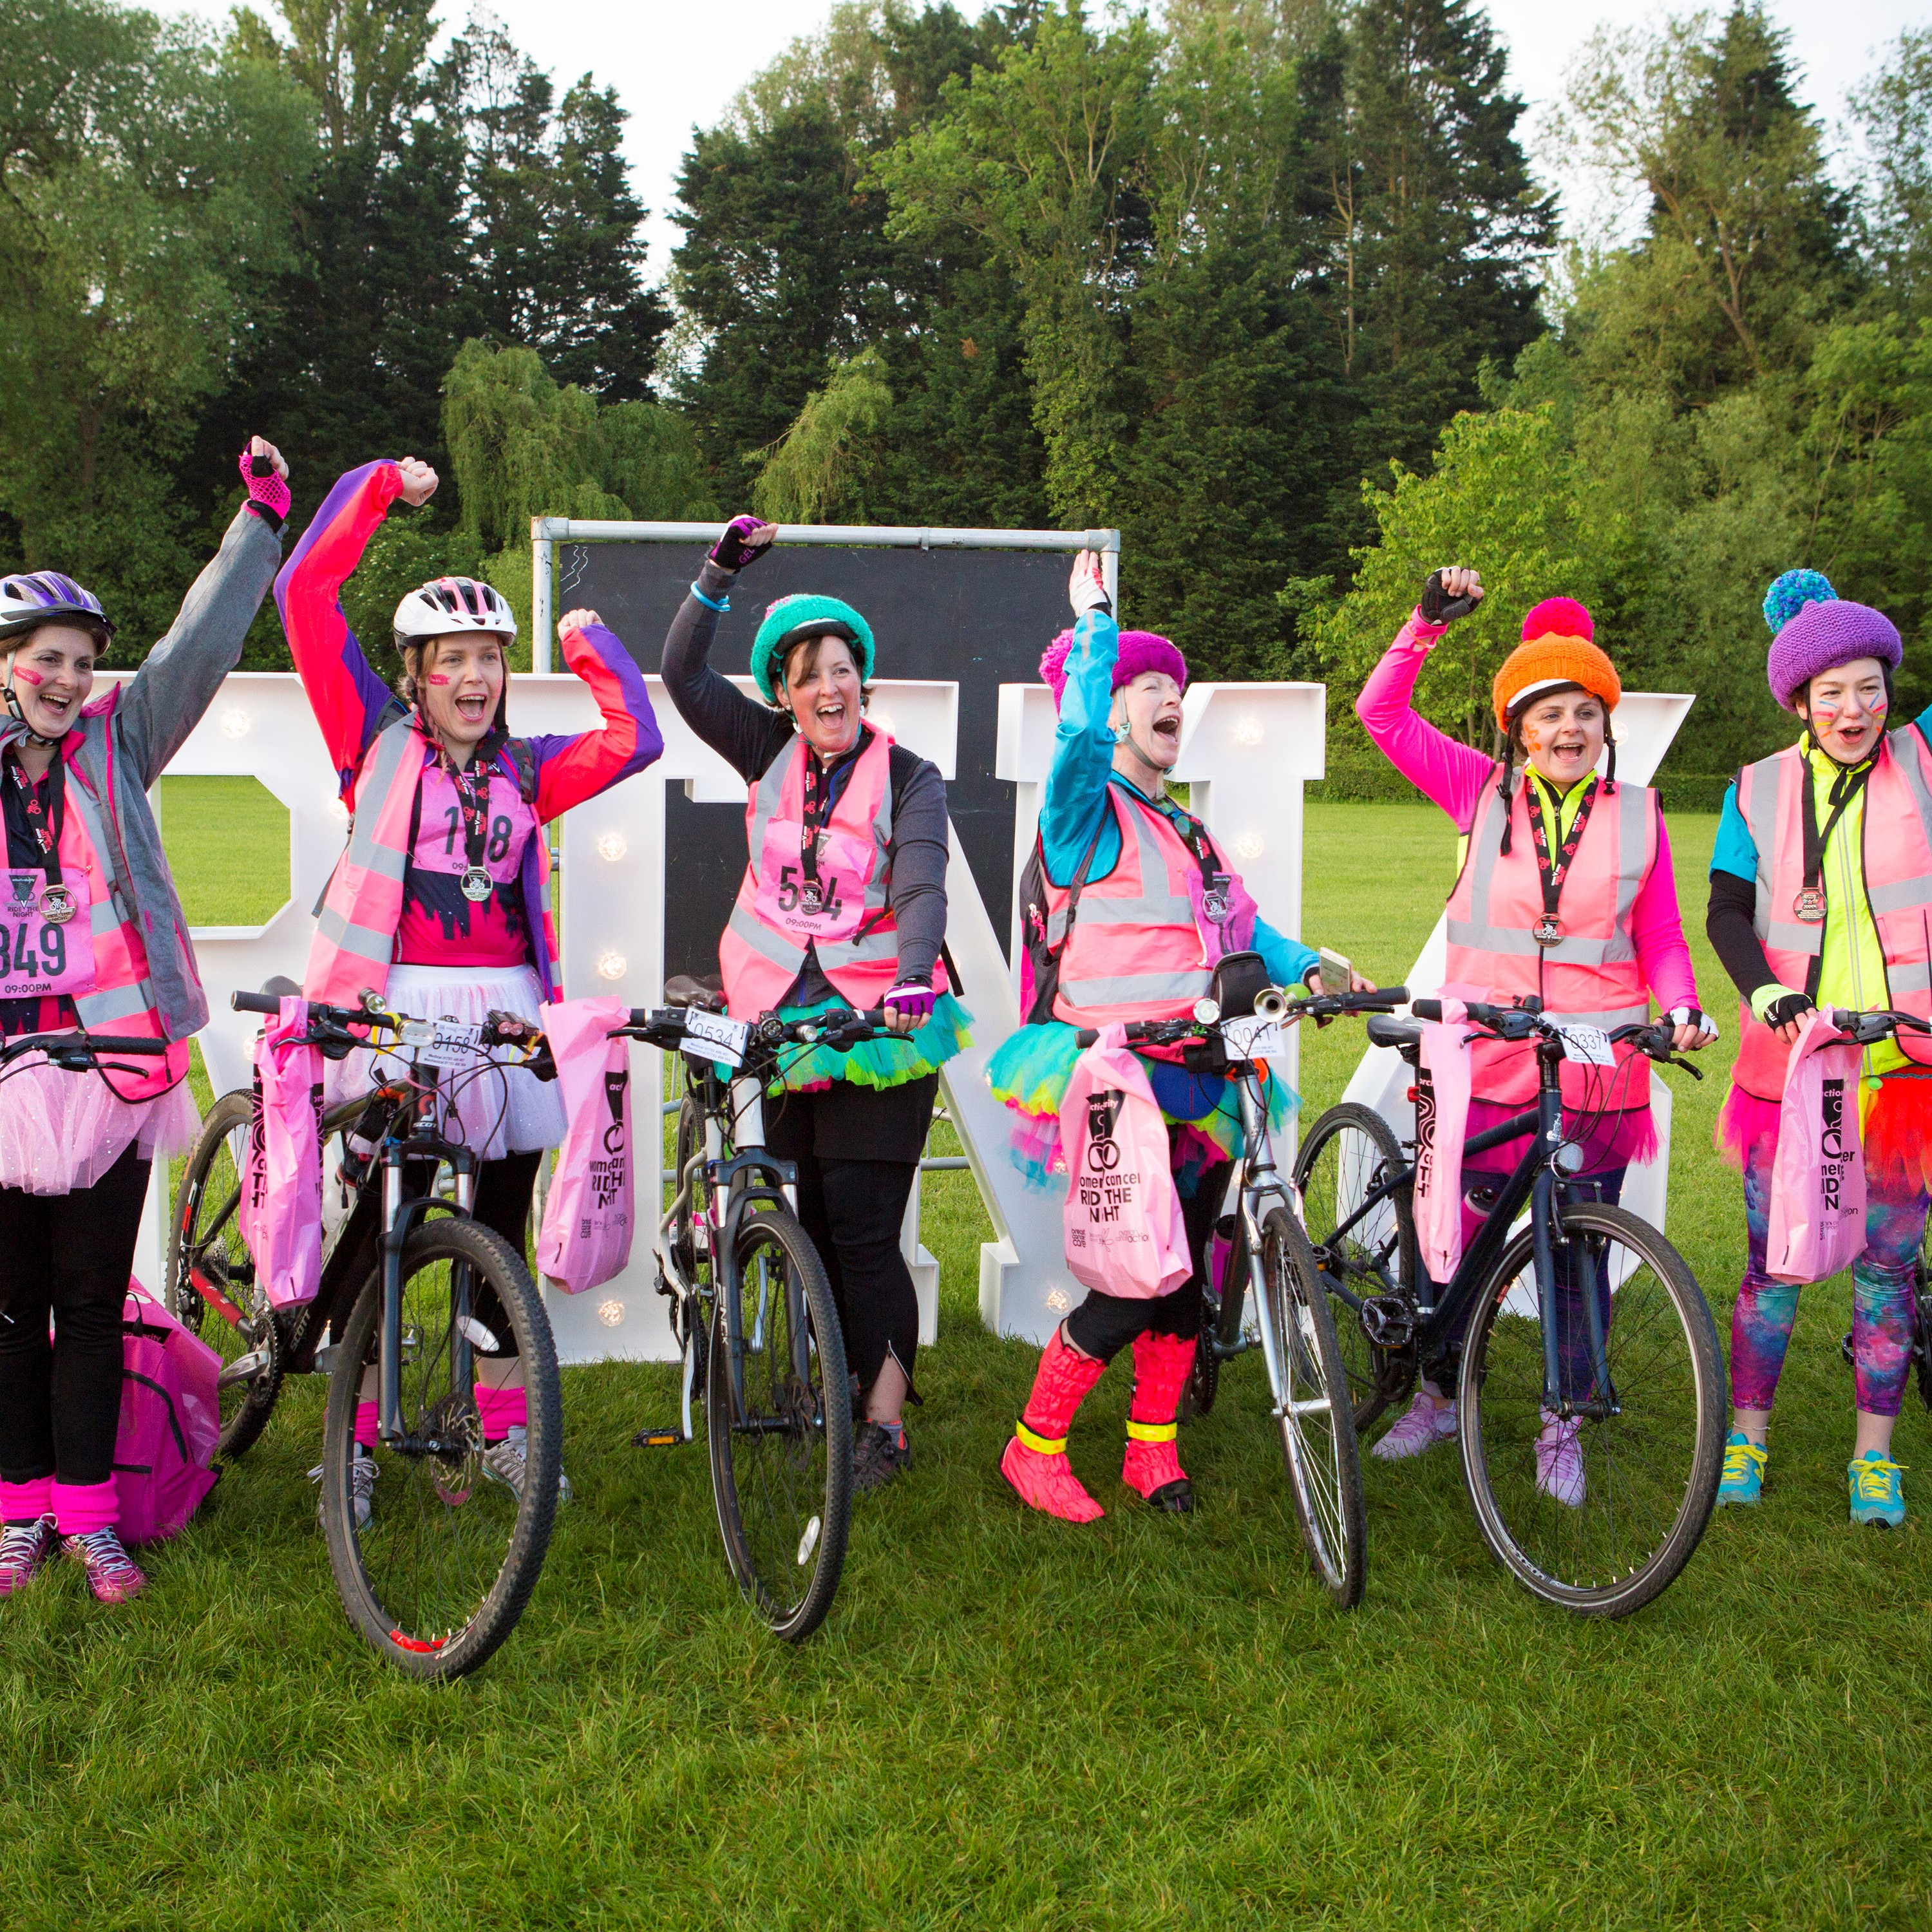 Women V Cancer - Ride the Night charity challenge in London supports Jo's Cervical Cancer Trust, Ovarian Cancer Action and Breast Cancer Care.